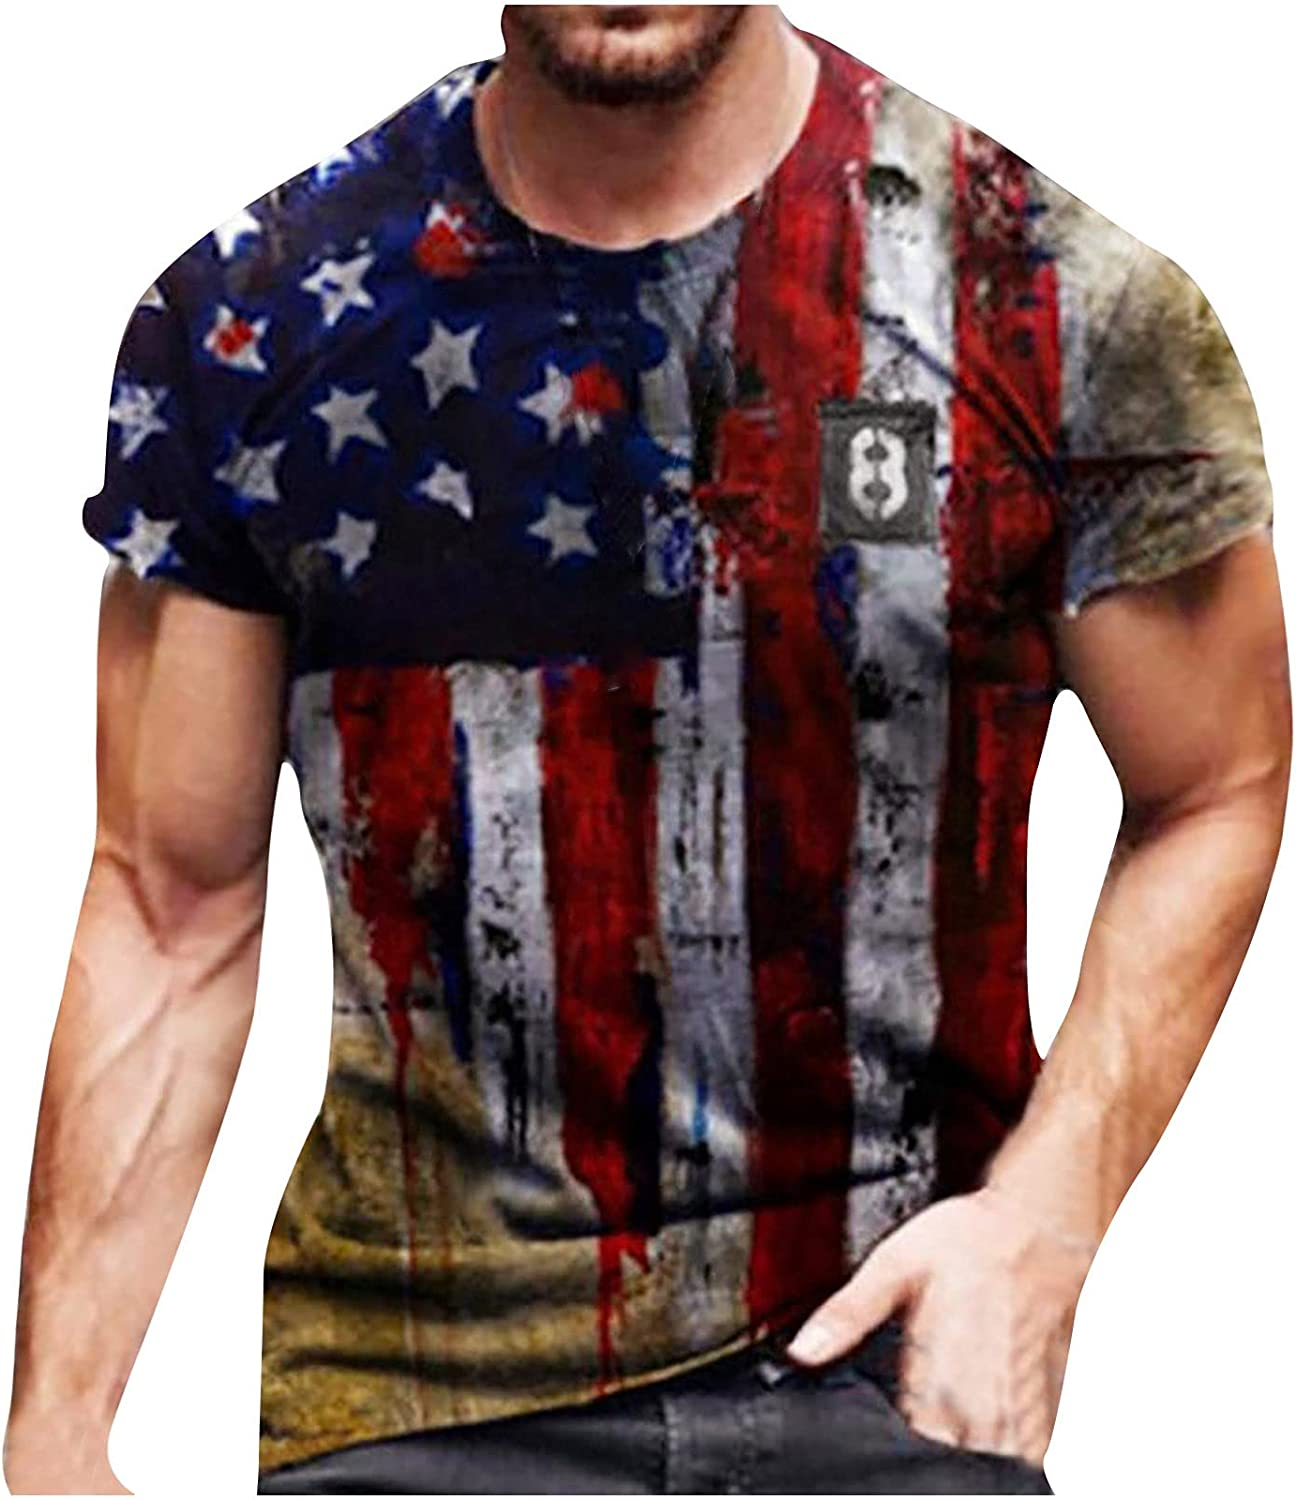 Mens American Flag T-Shirt Summer Casual Short Sleeve Graphic Print Tops Cool Muscle Workout Athletics Tee Patriotic Blouse (red01, XXXXL)